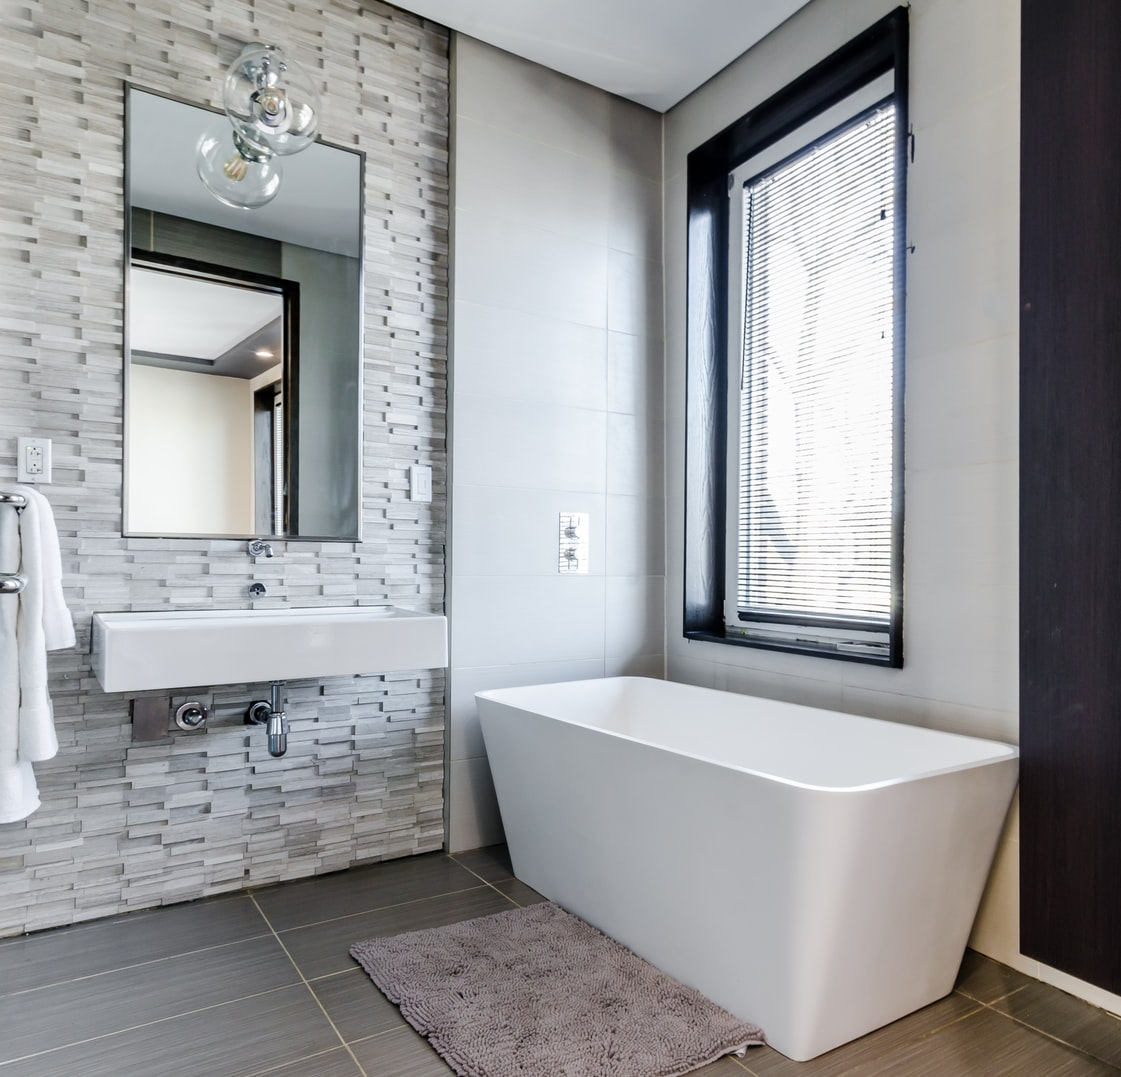 Bathroom Trends for 2018 - Murfreesboro Voice